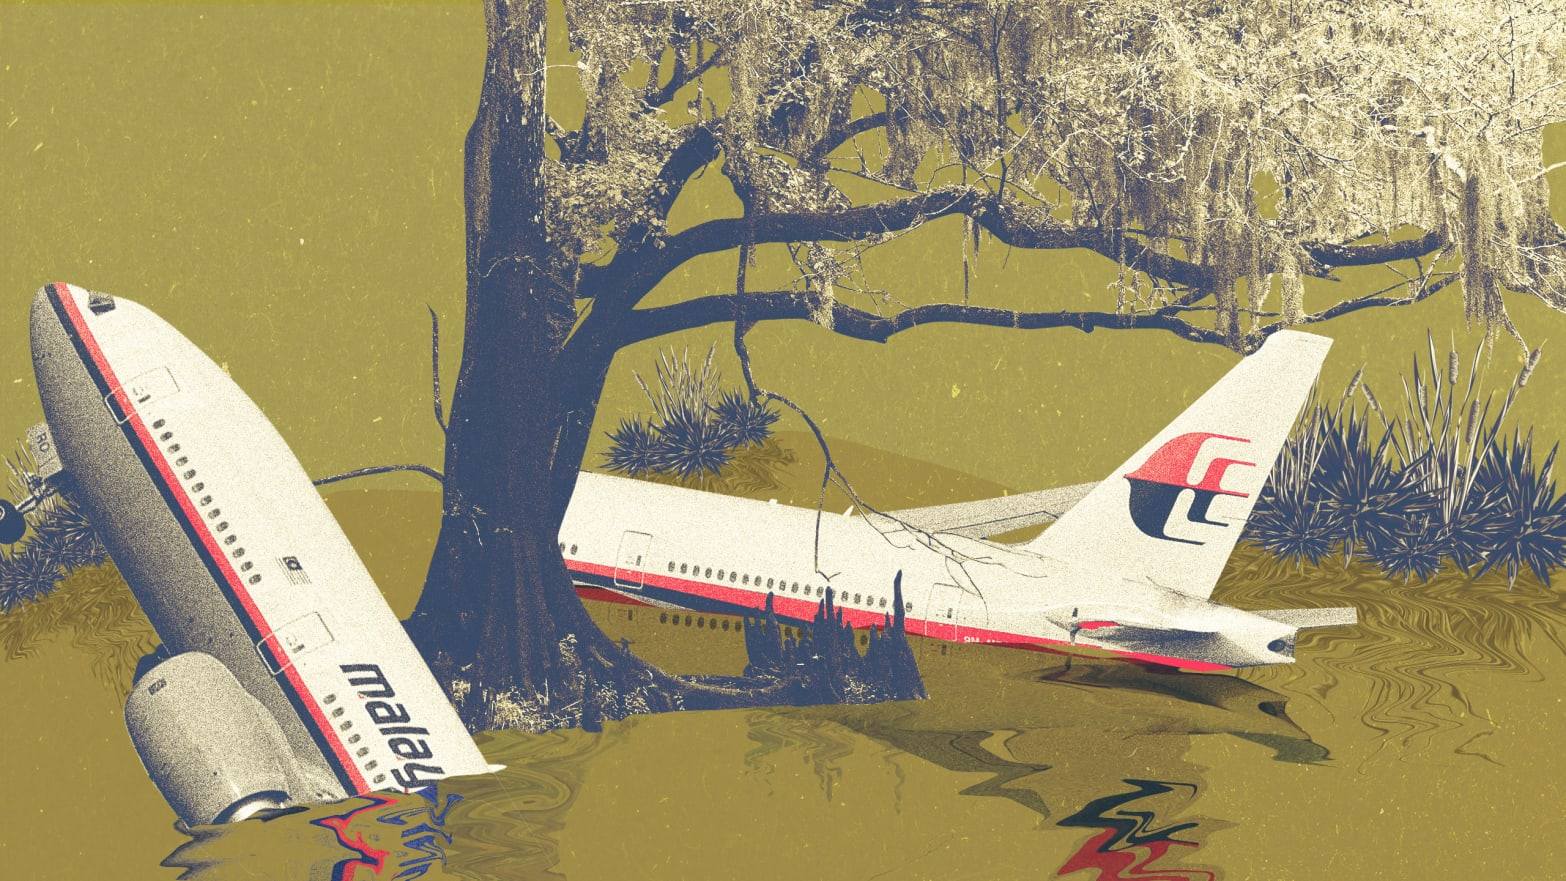 MH370 Didn't Just Disappear, It Was Caught in a Swamp of